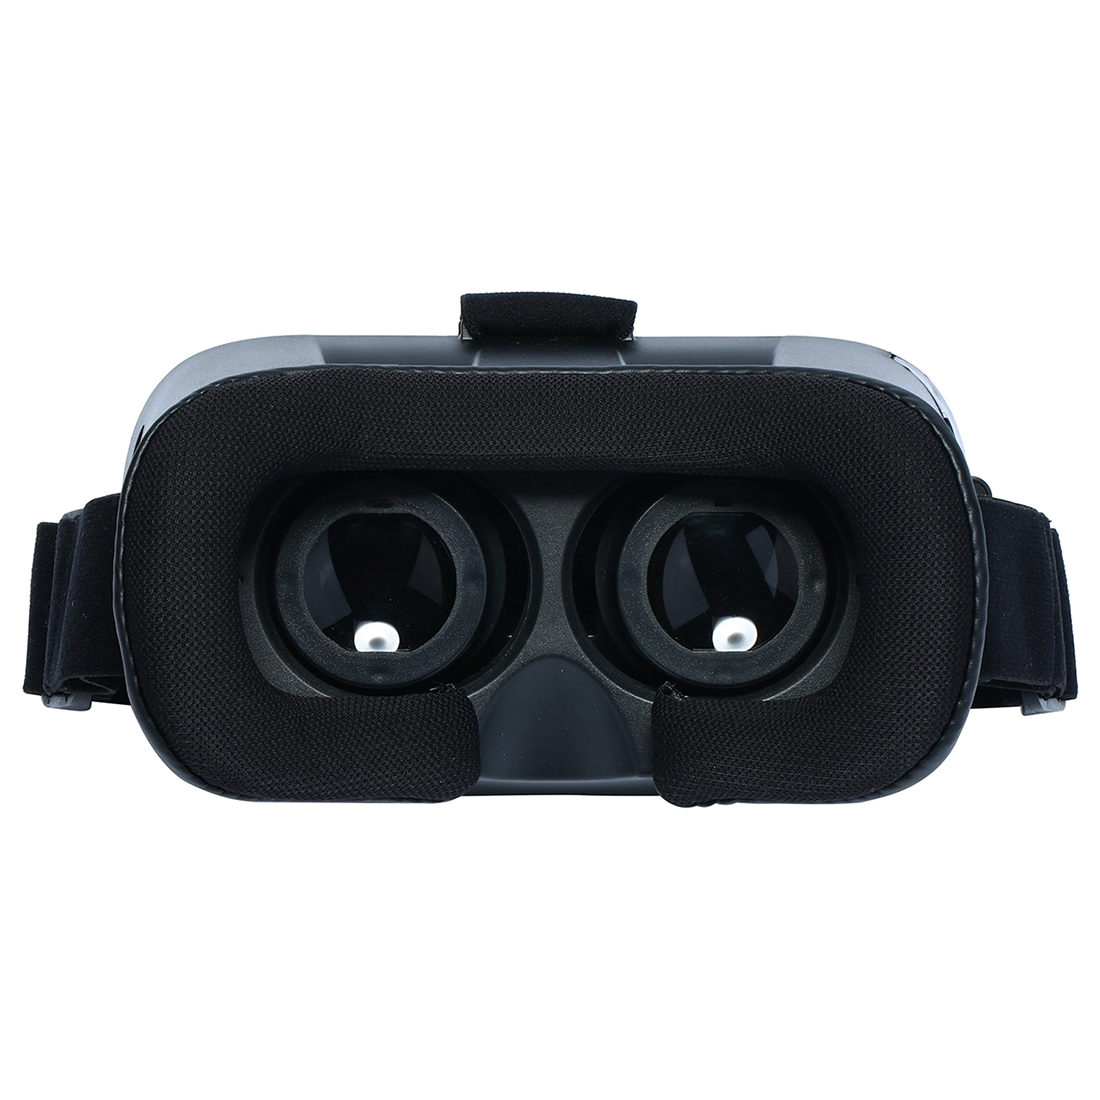 SCLS Universal ABS VR01 3D VR Virtual Reality Headset 3D Glasses for 4.7″-6.0″ Smart Phone black